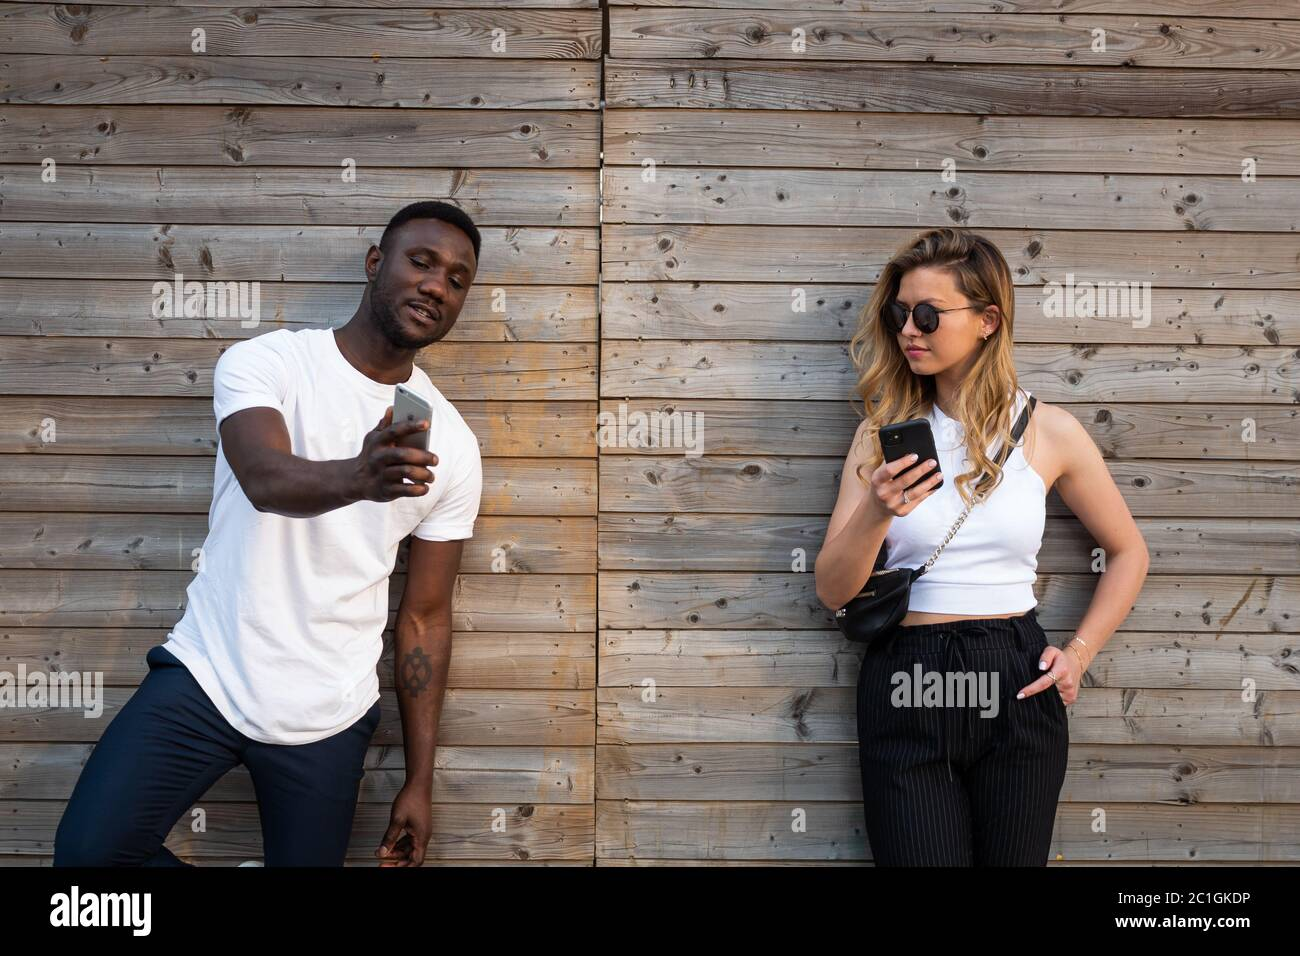 Young black man showing phone to blond caucasian woman wearing sunglasses. Medium shot. Front view. Stock Photo